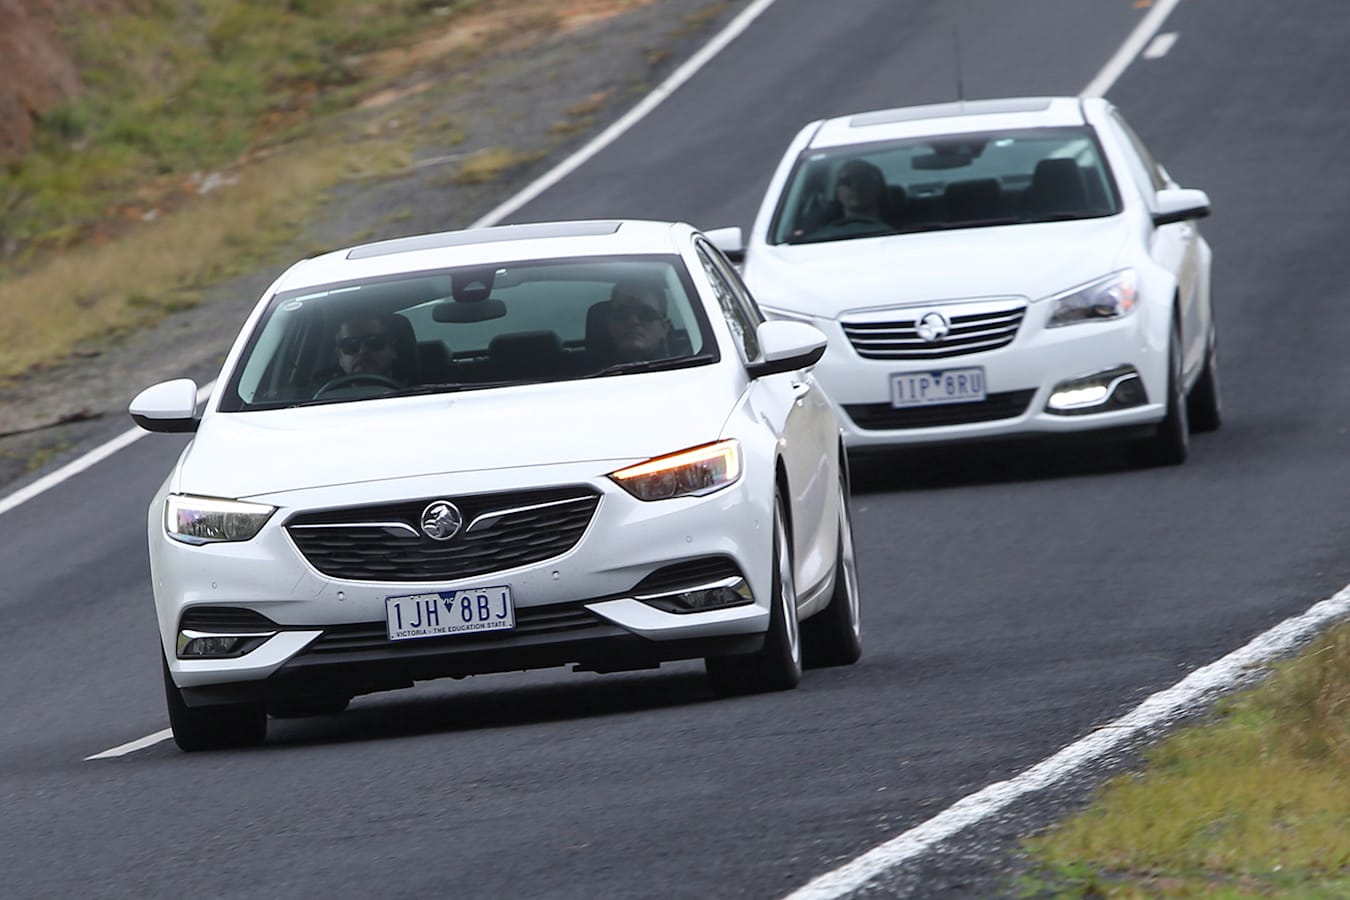 Holden Zb Commodore Pricing Front Jpg